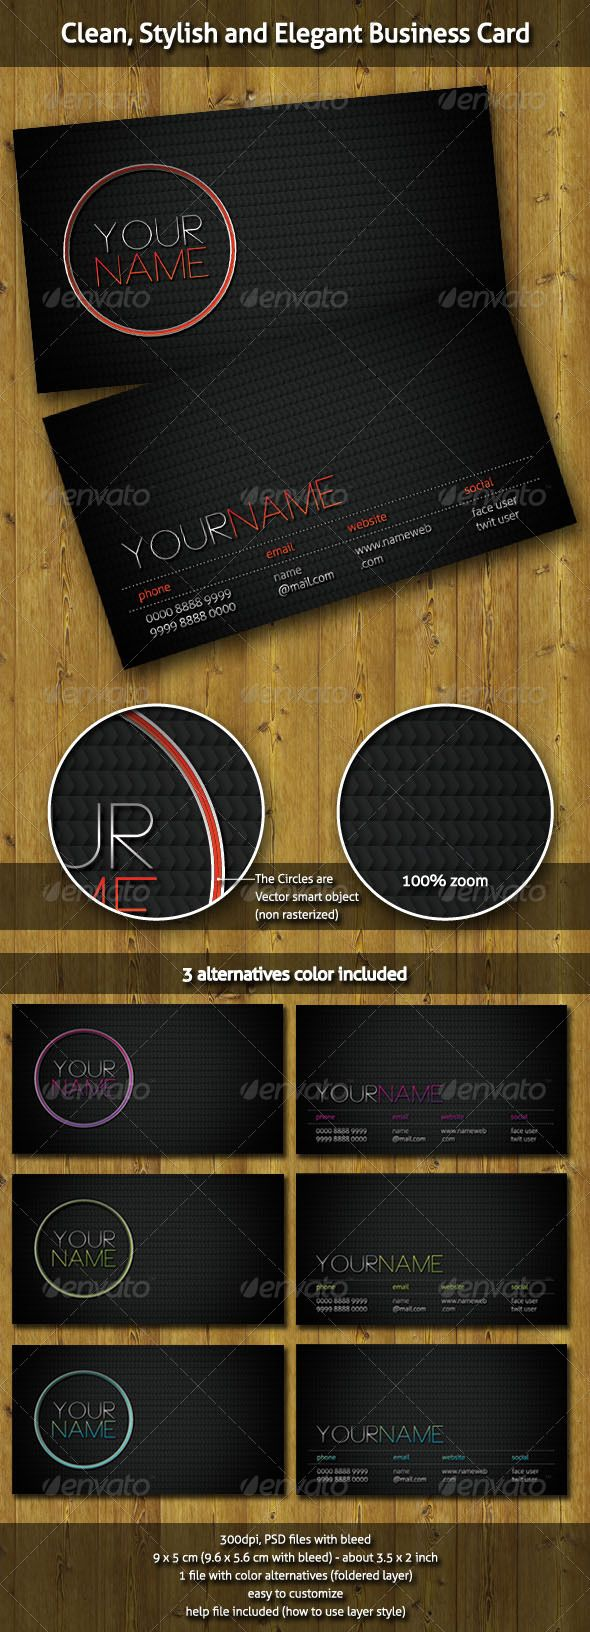 Clean, Stylish and Elegant Business Card | Elegant business cards ...